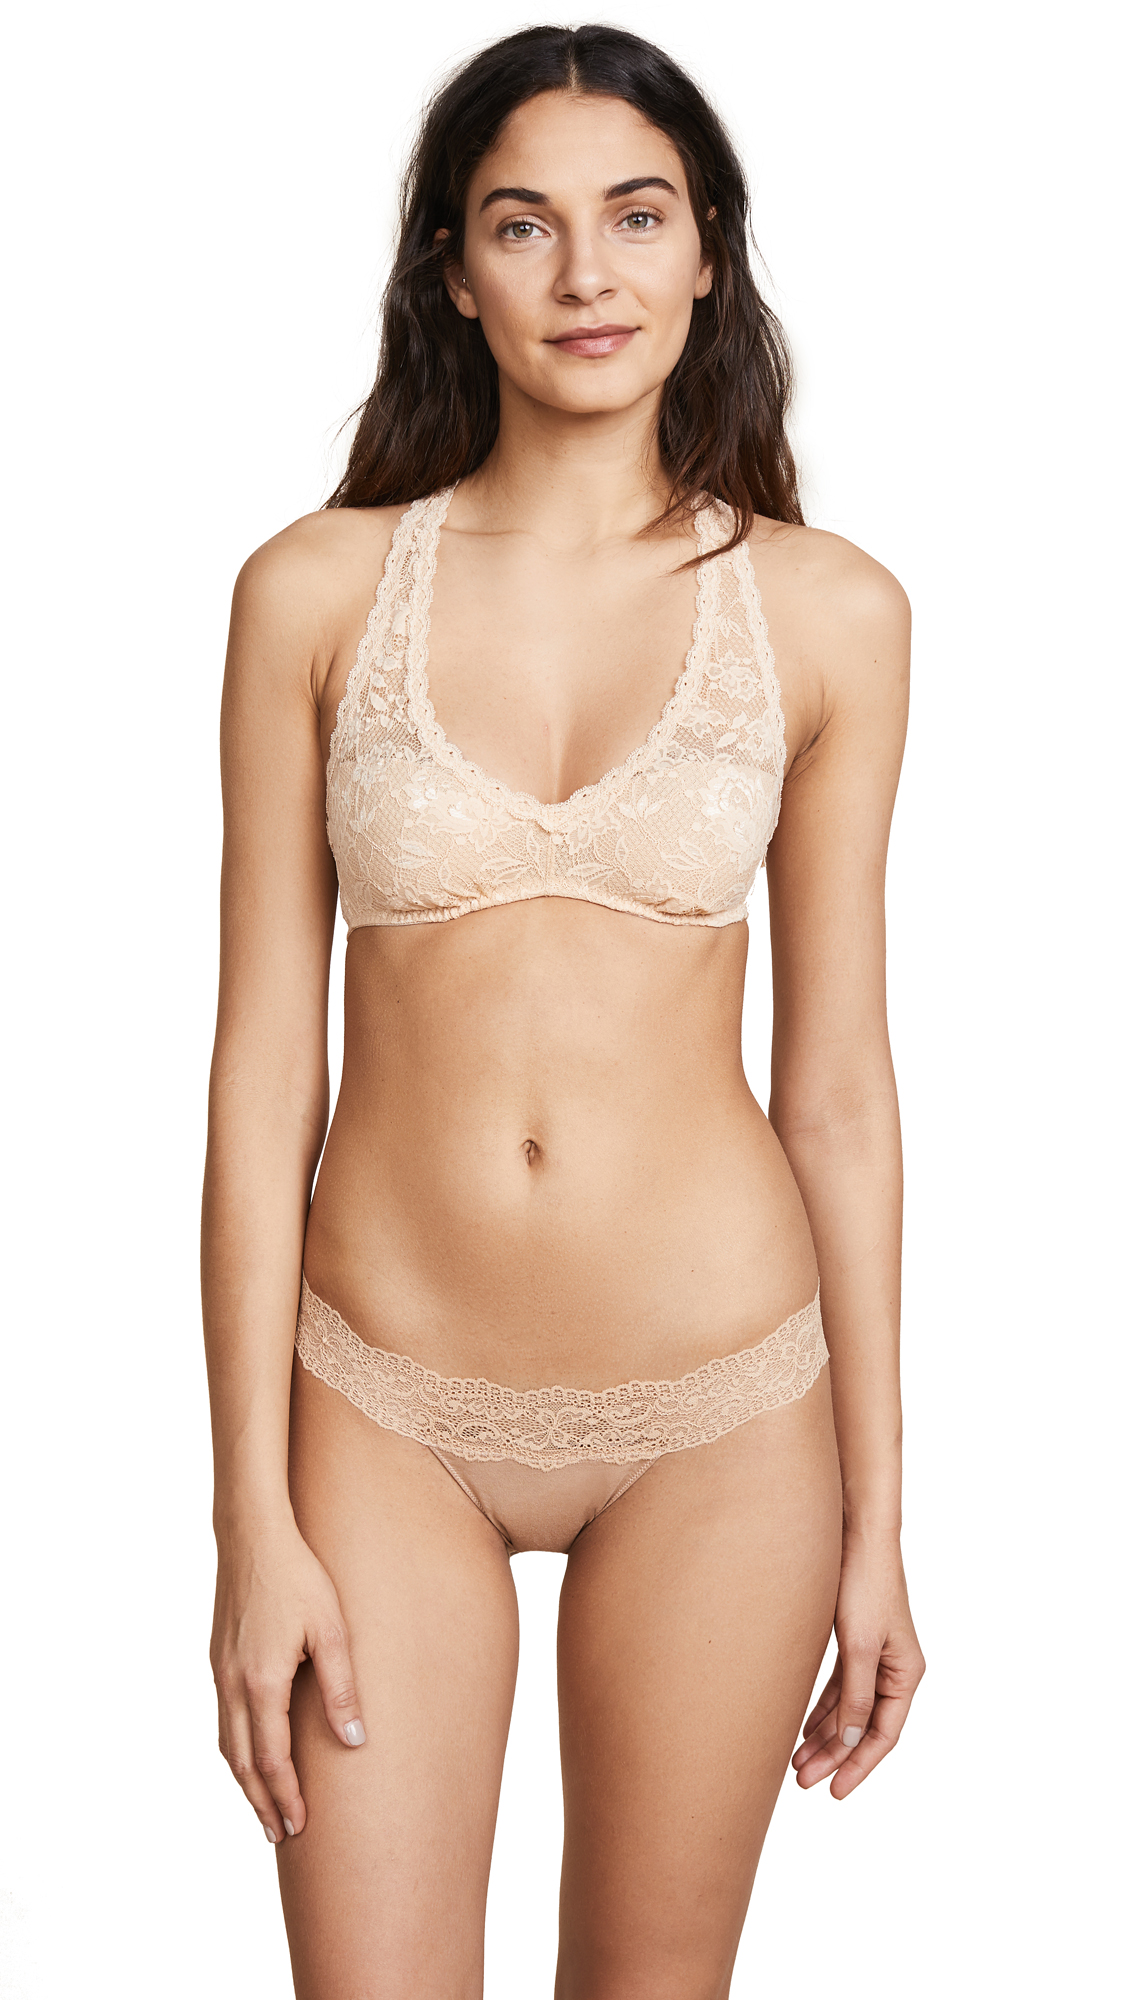 Cosabella Never Say Never Racer Back Bra In Blush